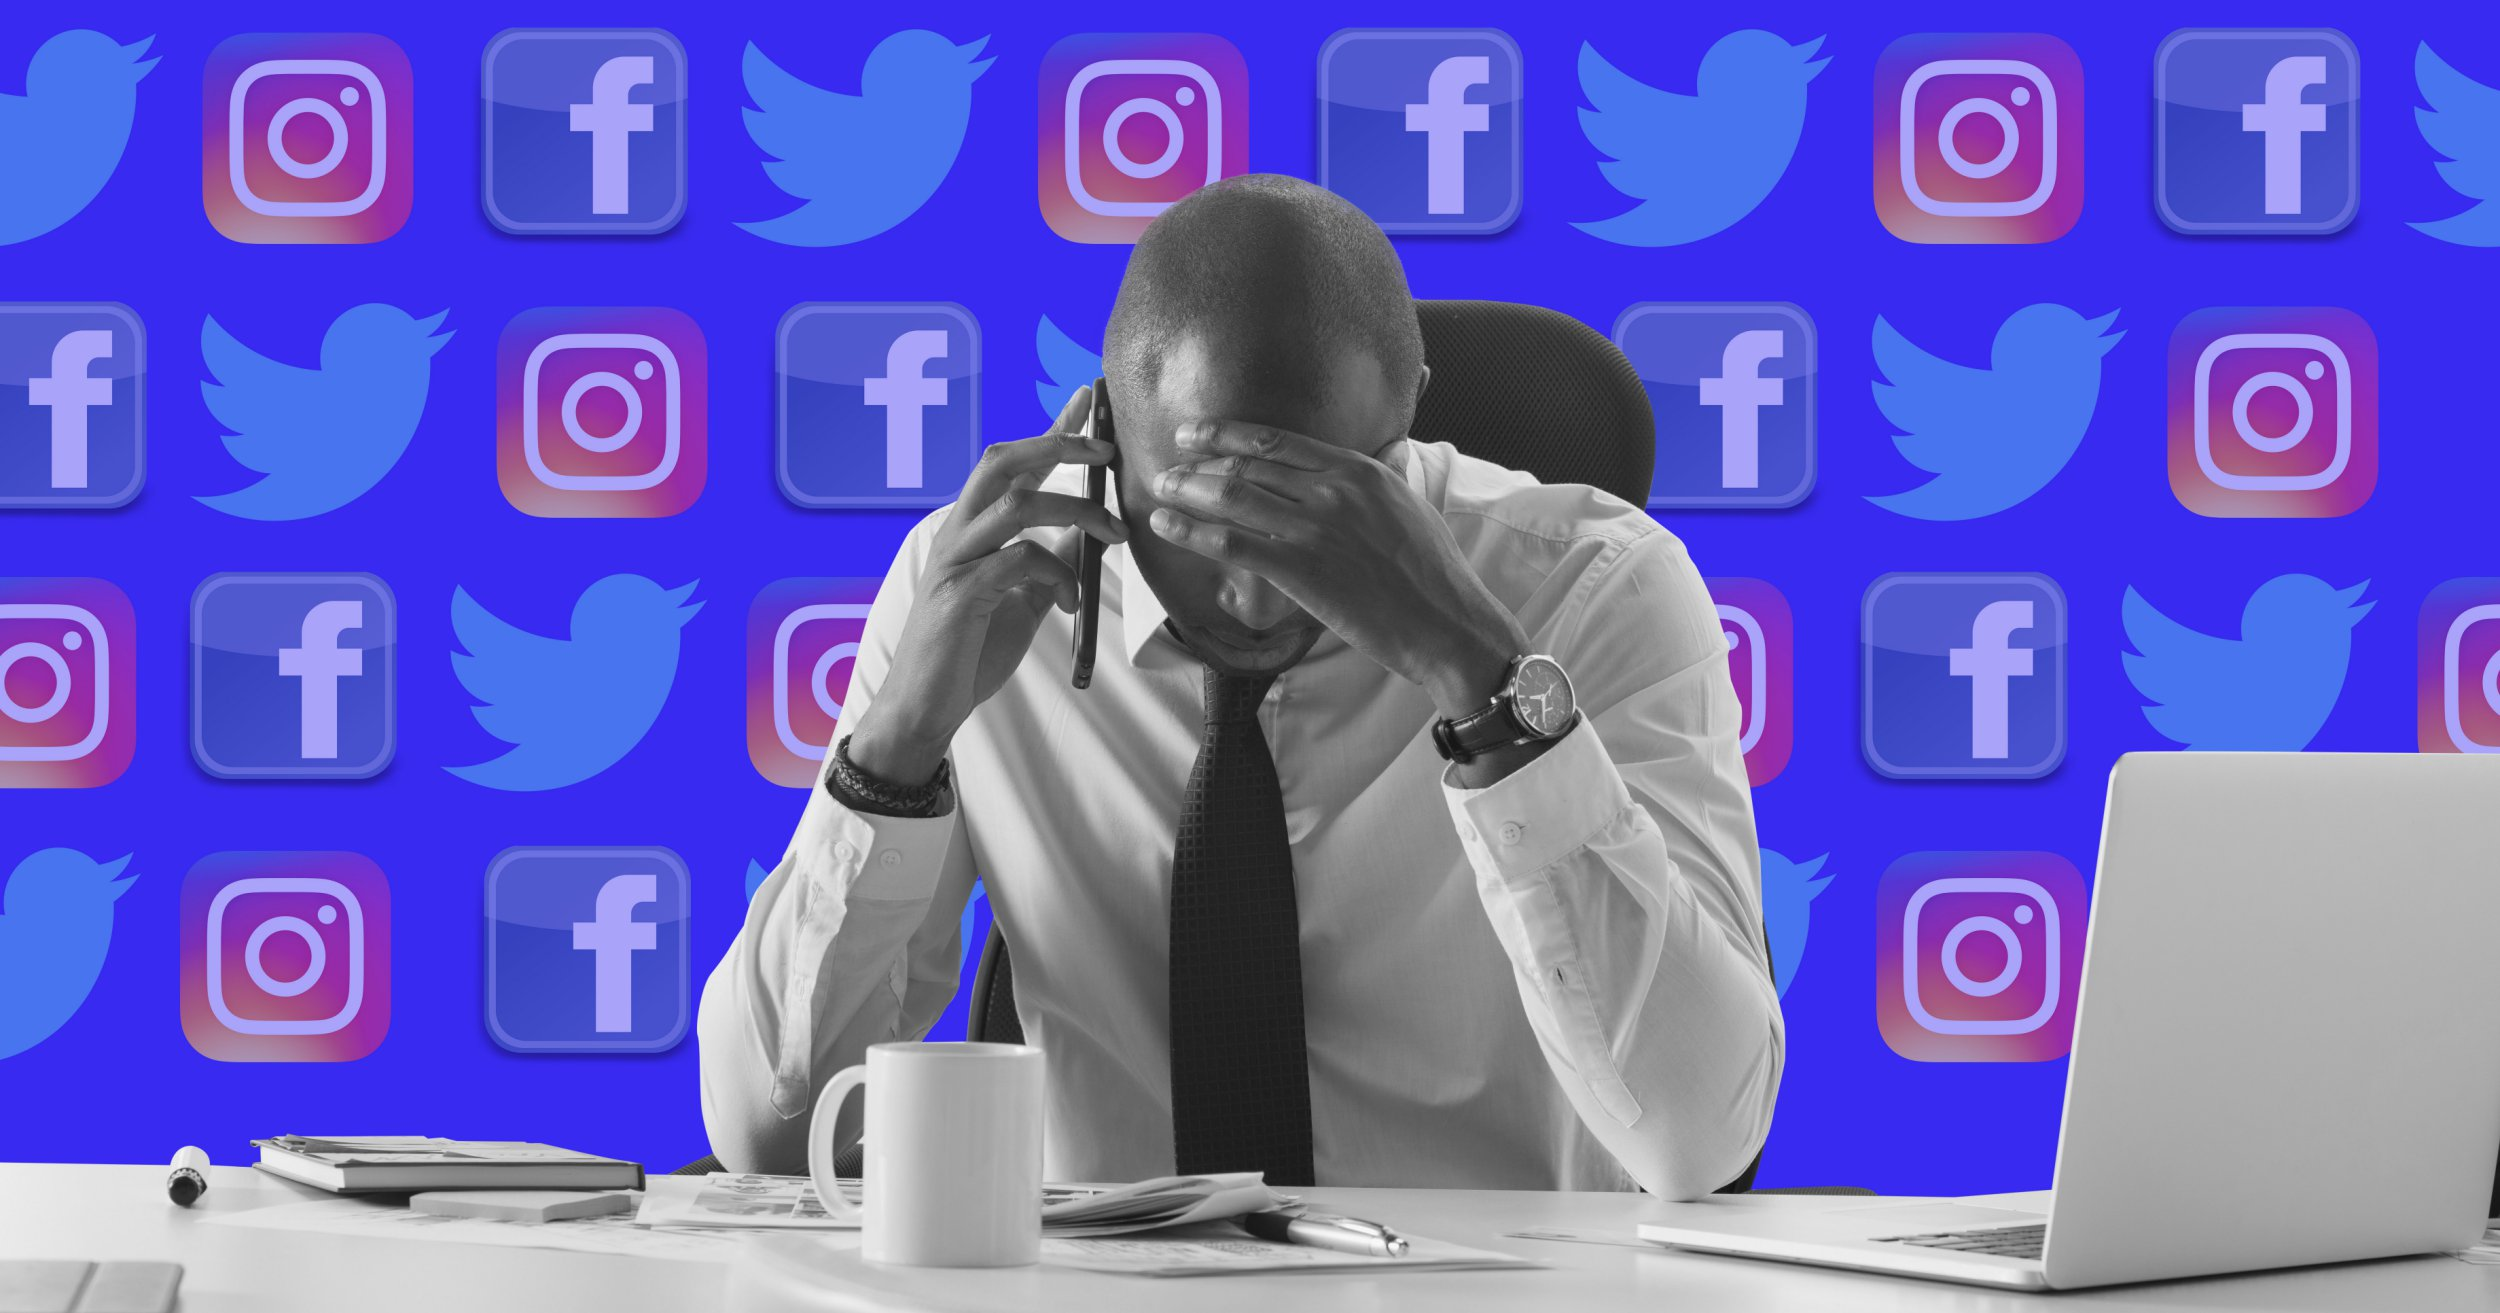 Are employers doing enough to help social media managers with their mental health?